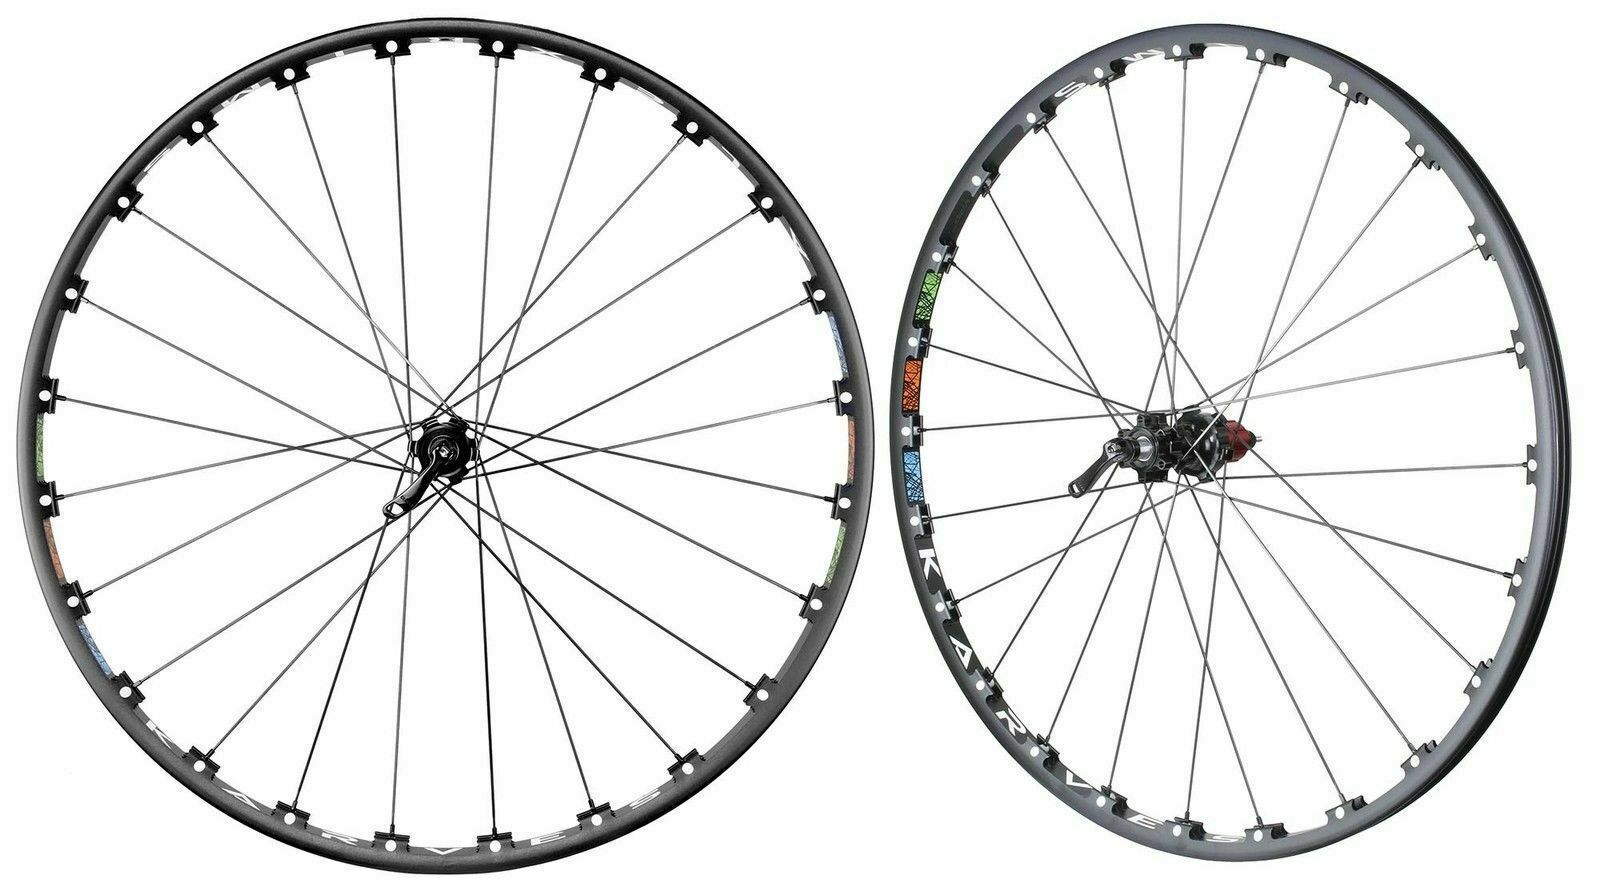 Alexrims KARVES MTB Bike Disc Brake Wheelset For Sram Shimano 10 Speed 27.5""